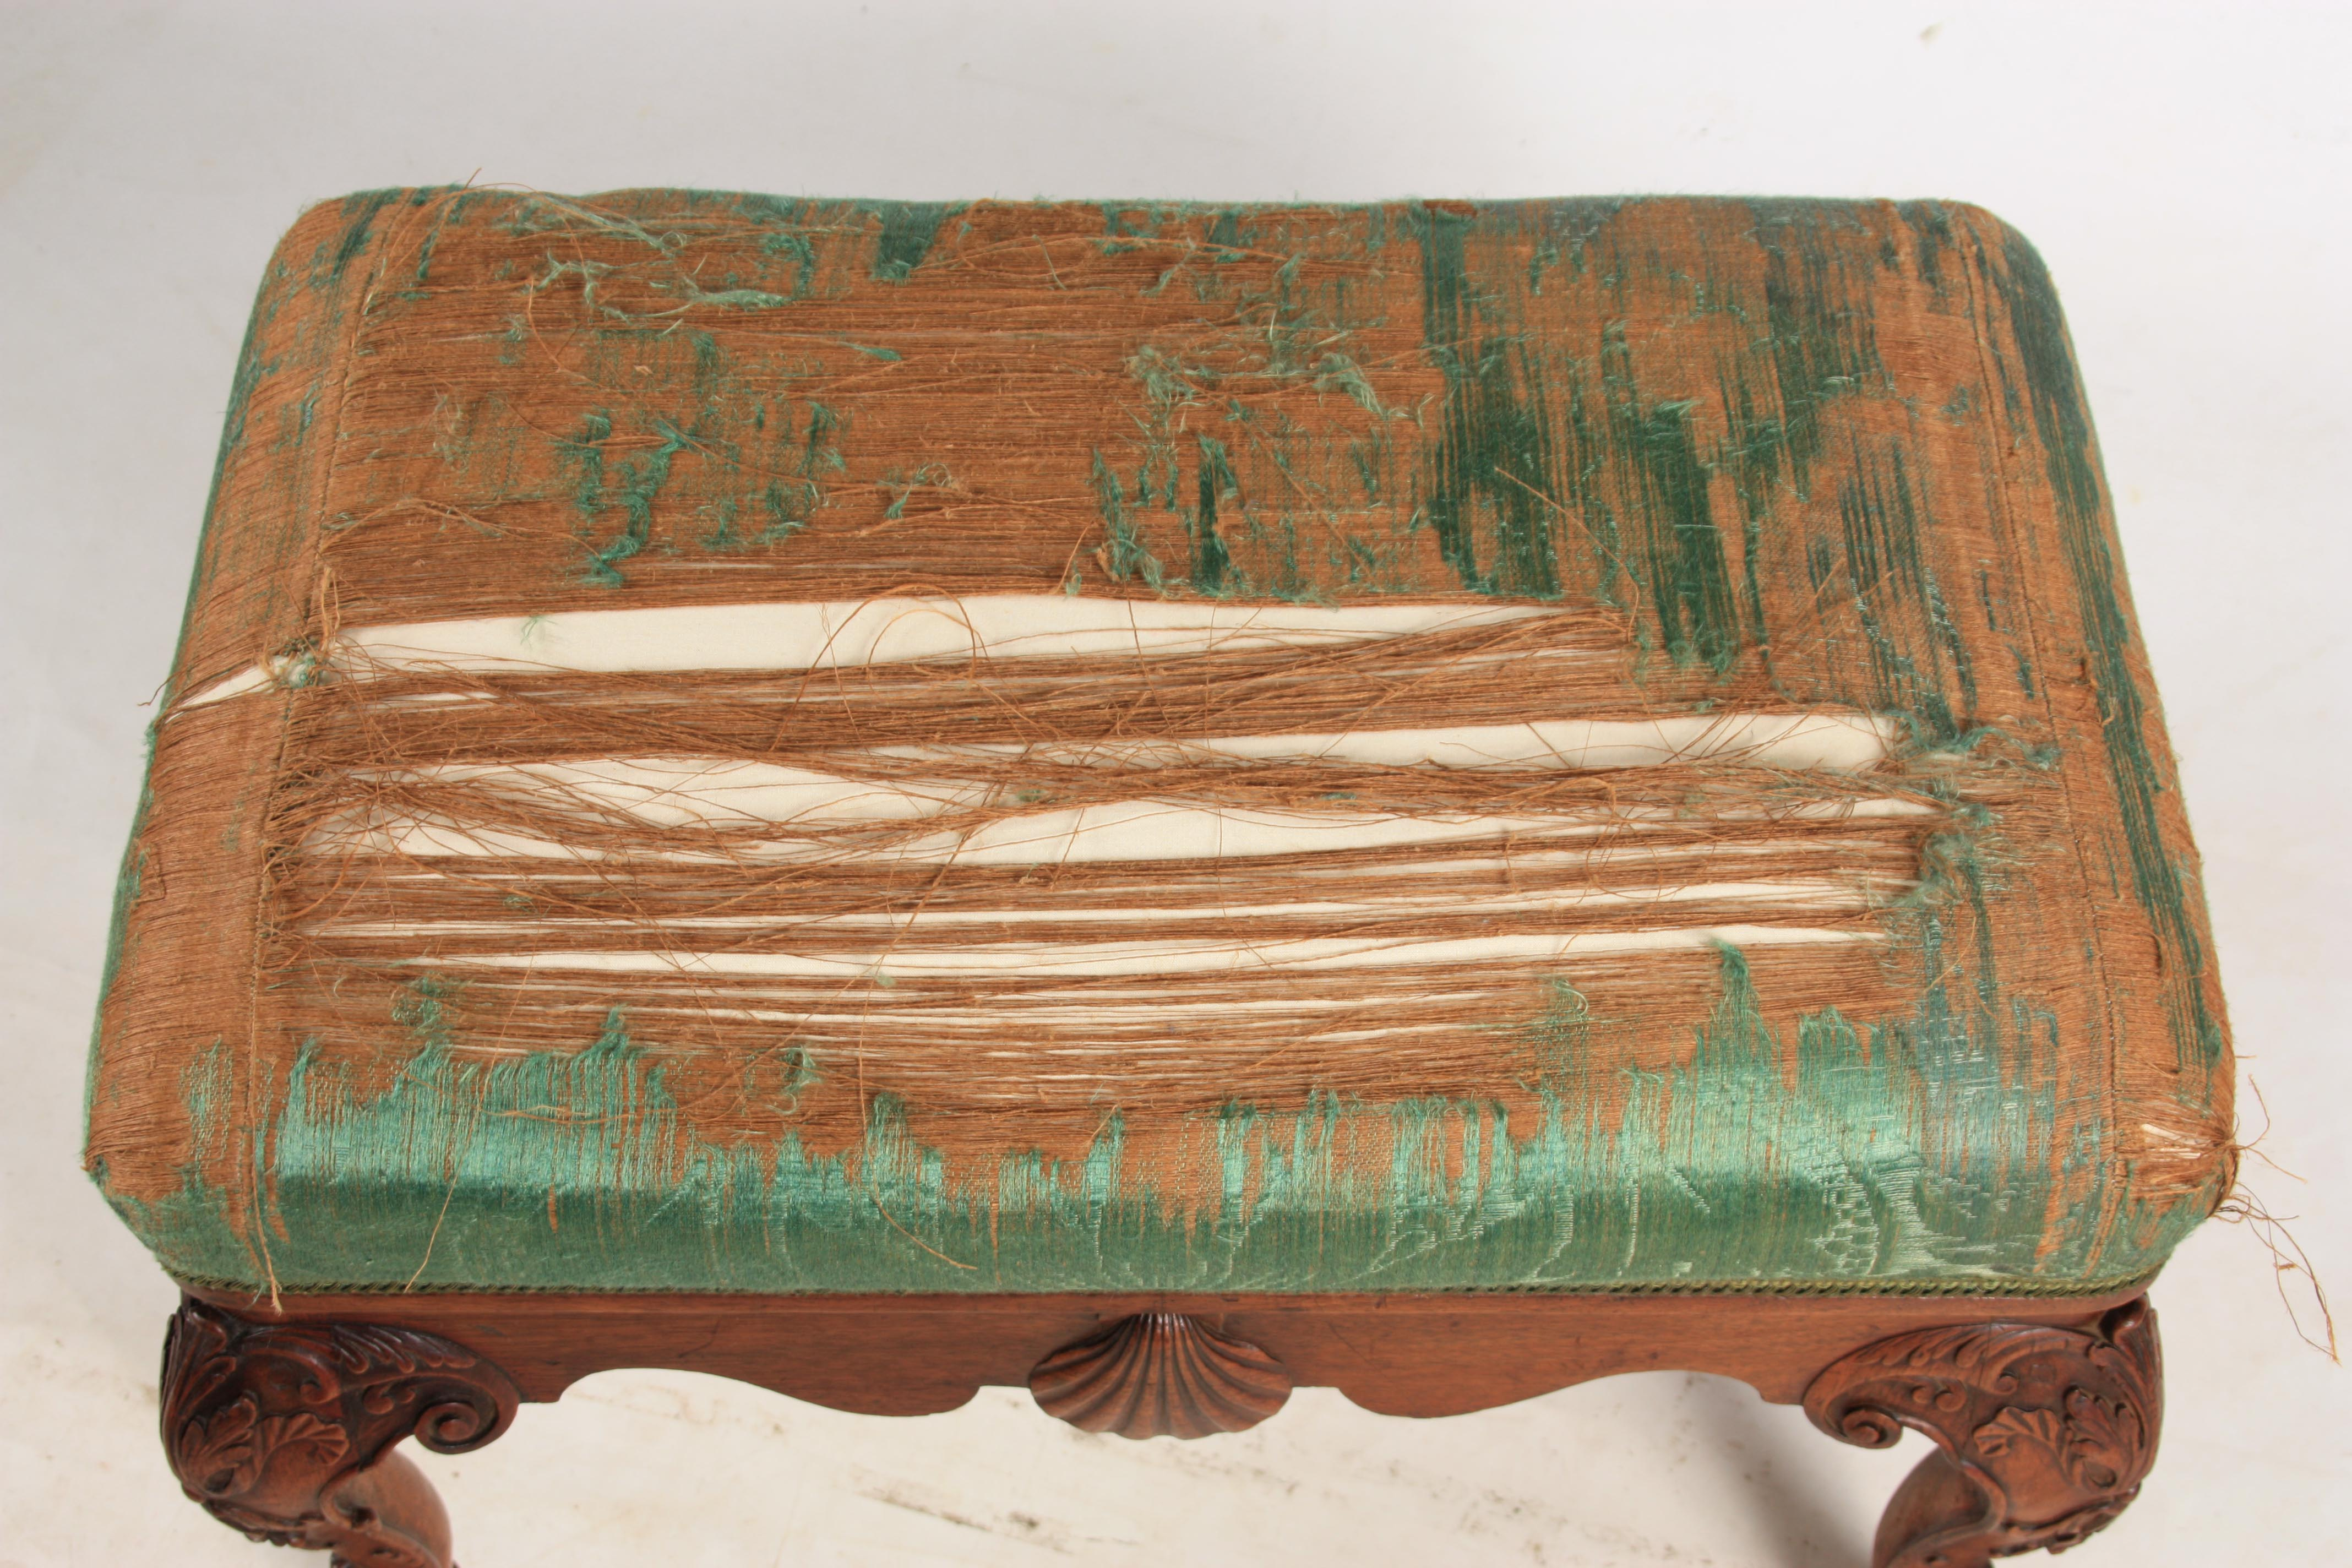 A MID 18TH CENTURY IRISH STYLE MAHOGANY DRESSING TABLE STOOL with upholstered top above shaped rails - Image 7 of 7